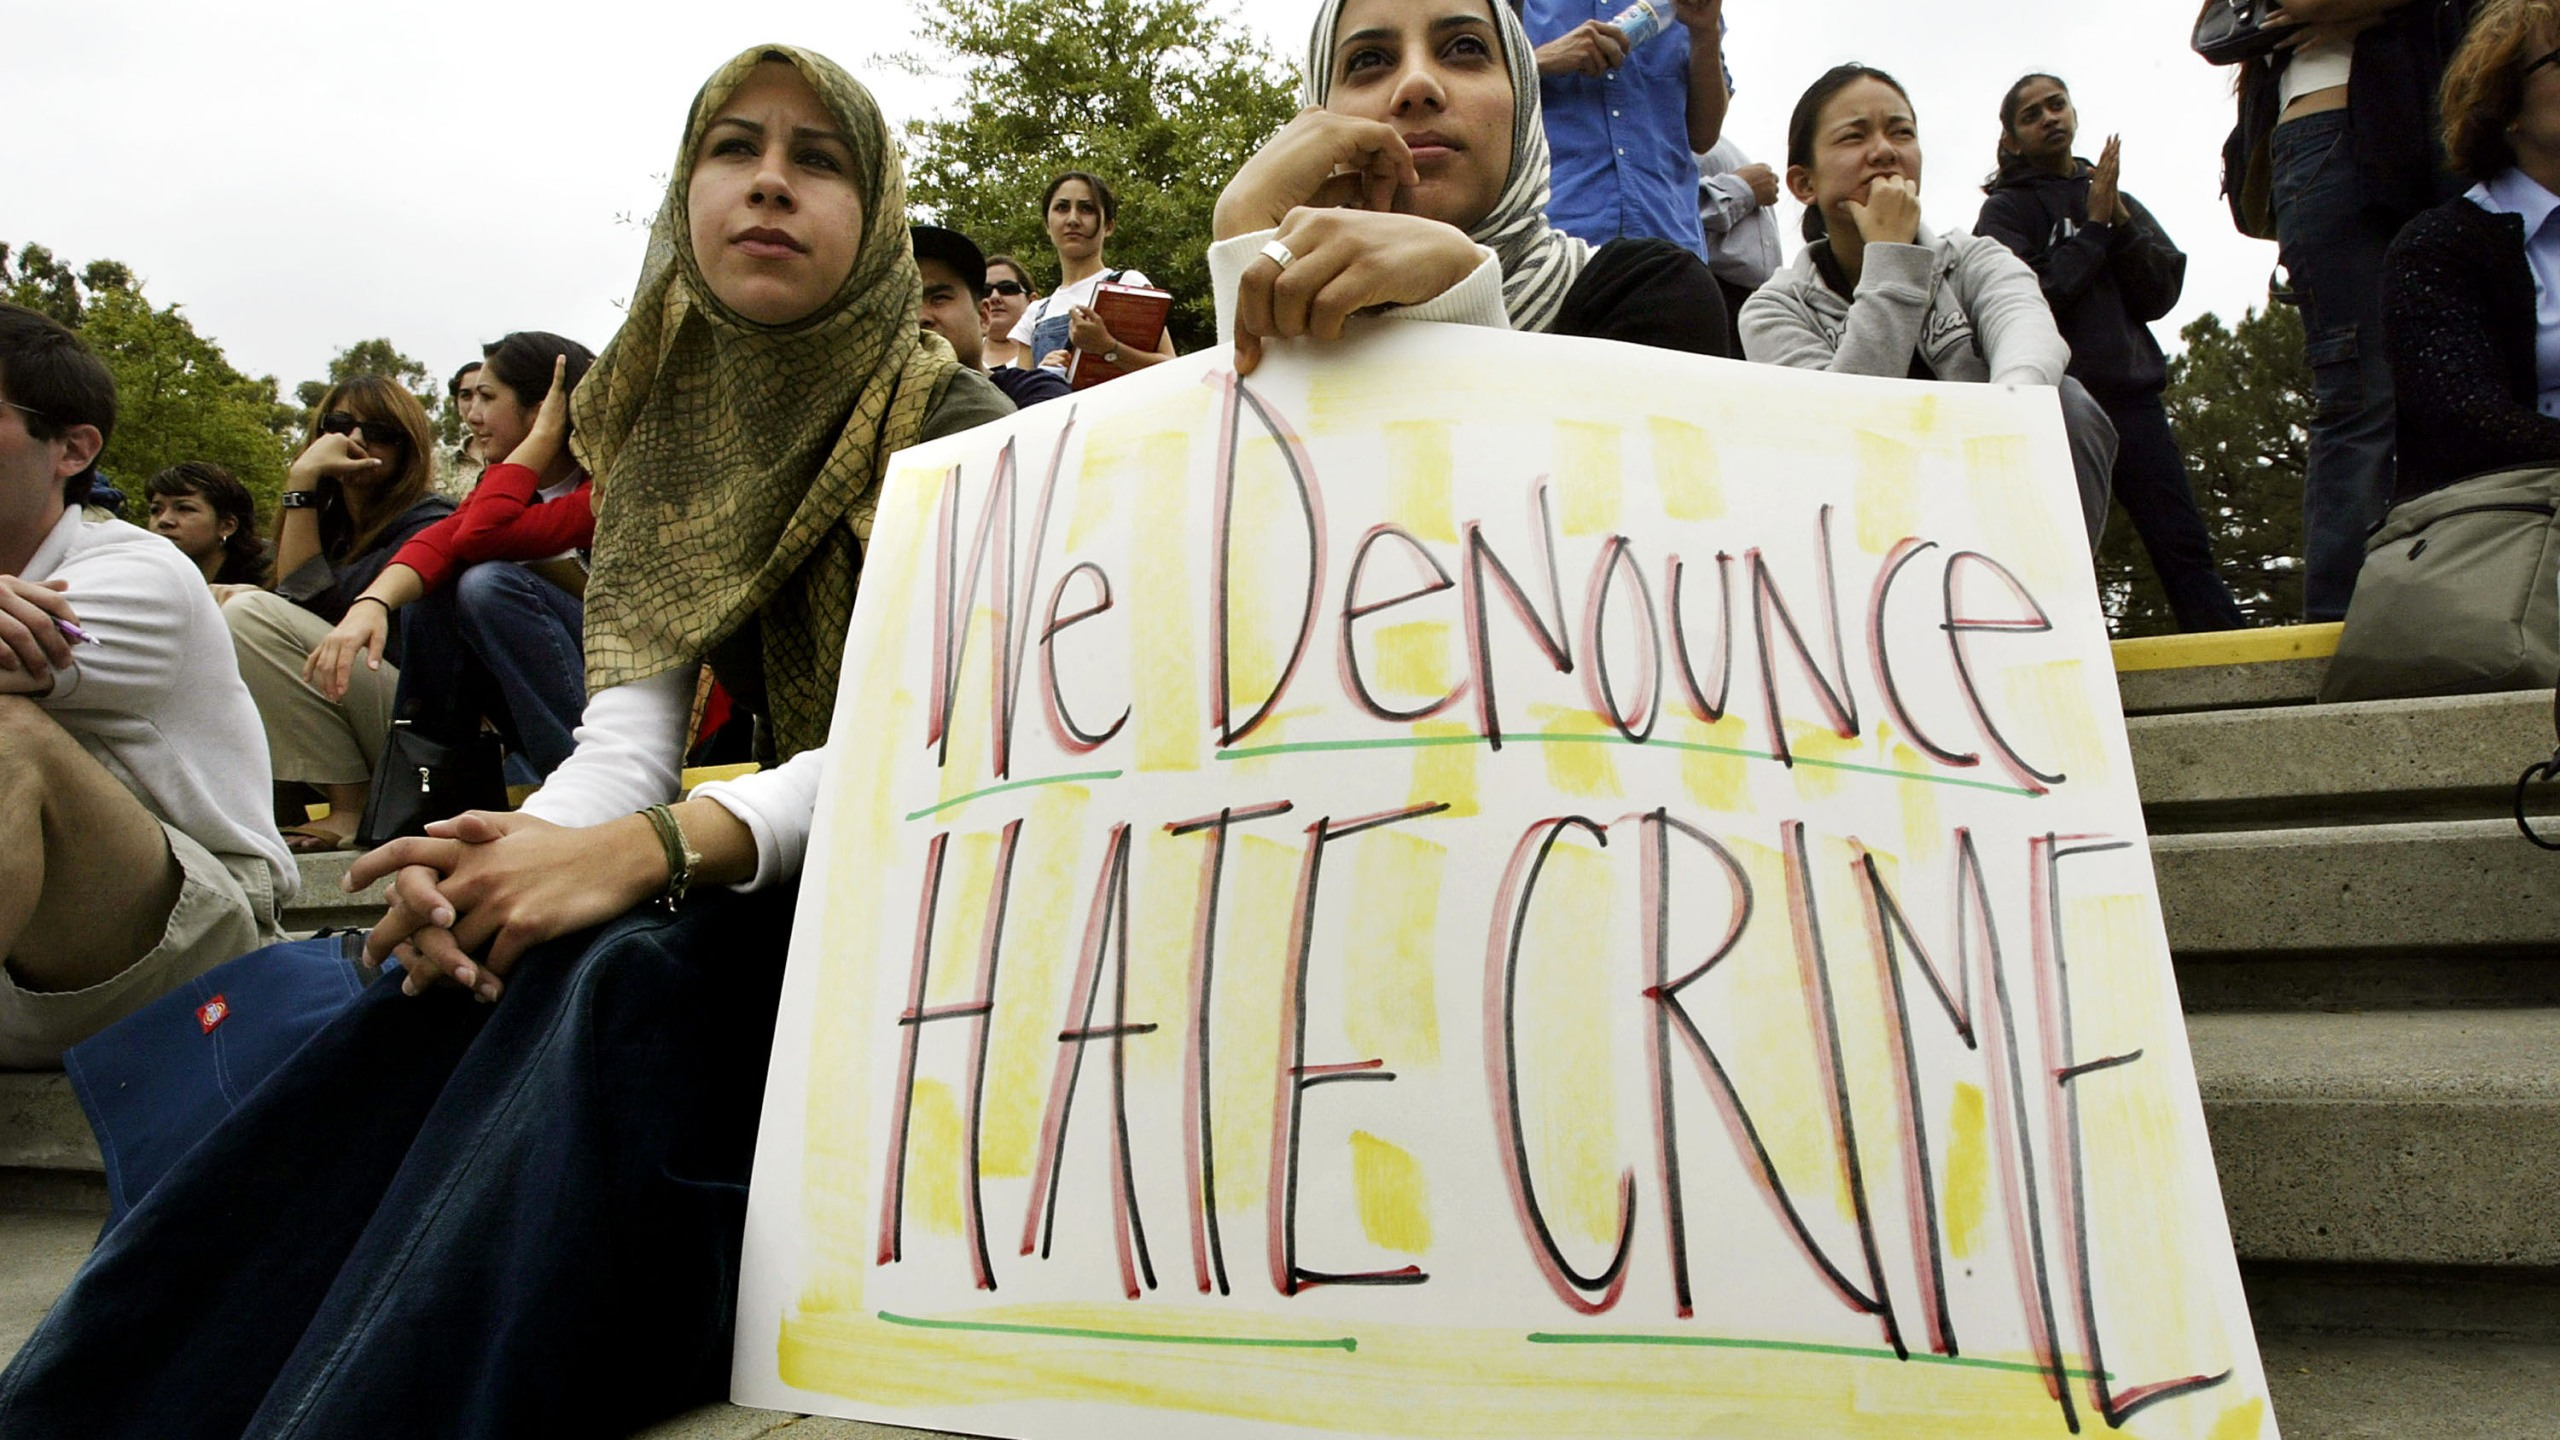 Members of the Society of Arab Students at UC Irvine participate in a protest on May 27, 2004 in Irvine, California. (David McNew/Getty Images)